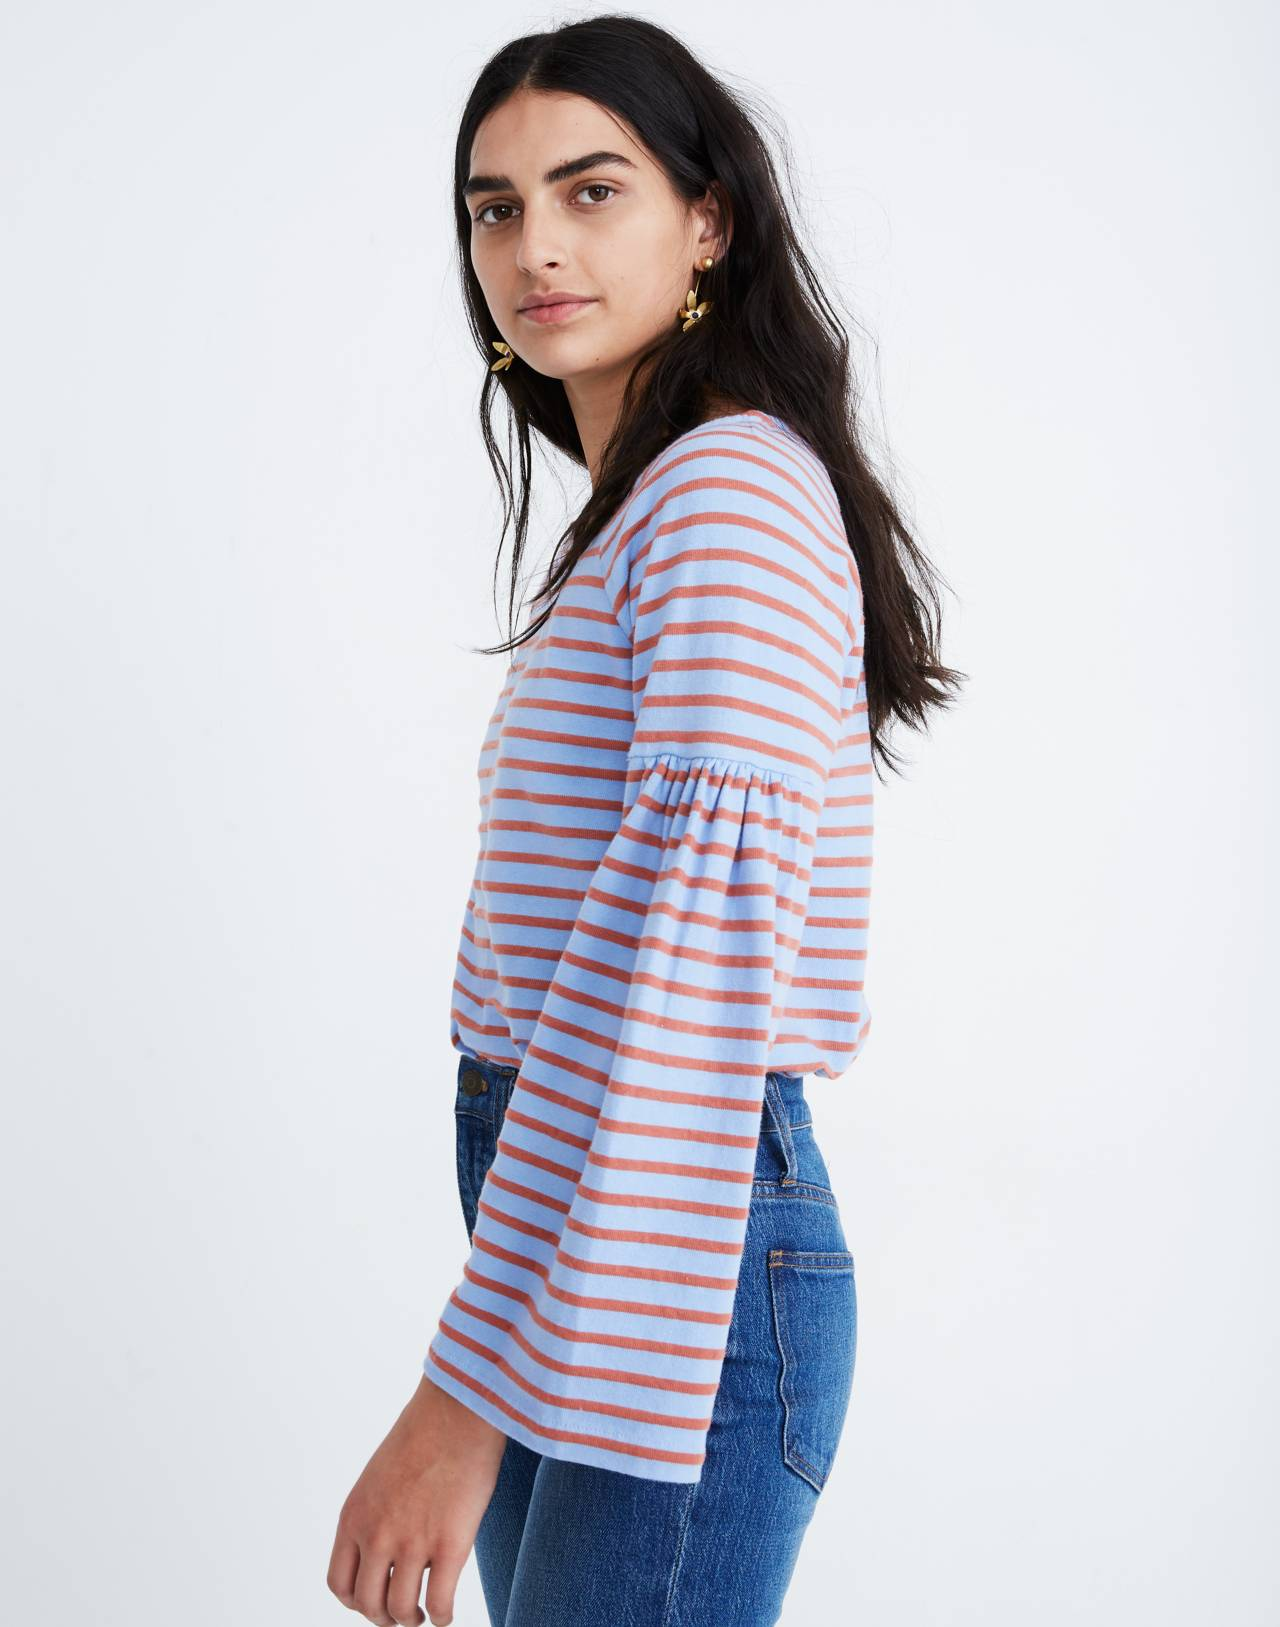 Shirred-Sleeve Sailor Top in fragile peri image 1